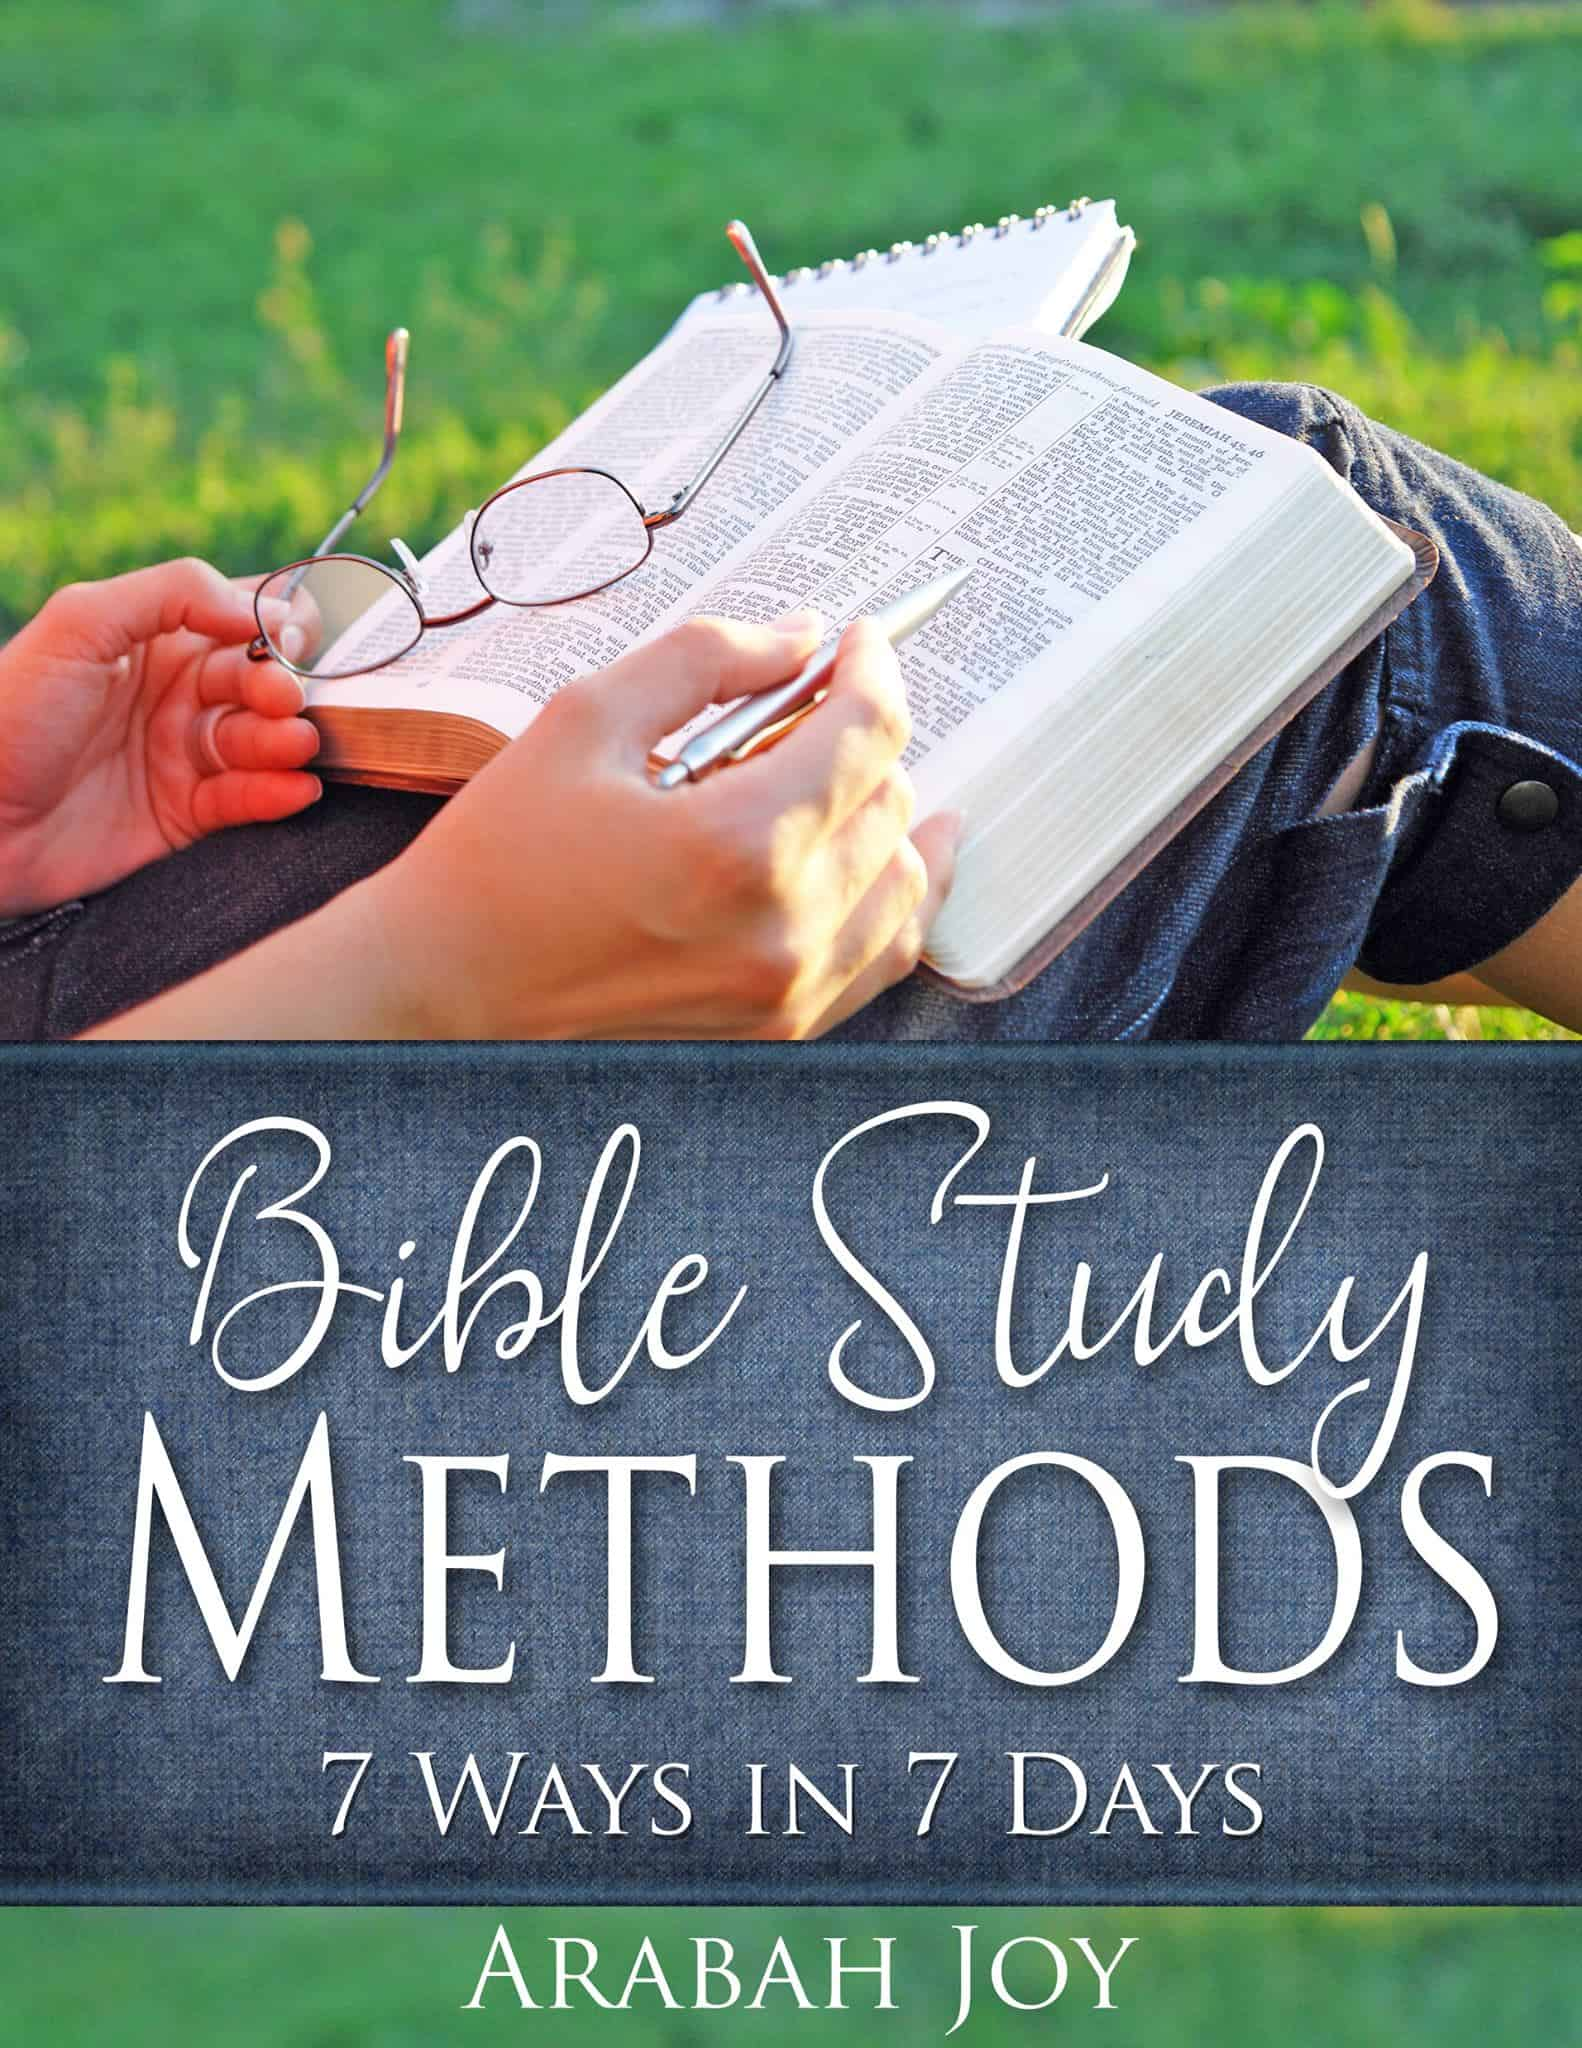 One of the Most Powerful Ways to Refresh Moms. Bible Study Methods. 7 Methods in 7 Days. Arabah Joy. Scripture. Growing in faith. Encouragement for Moms. Bonus Freebie.